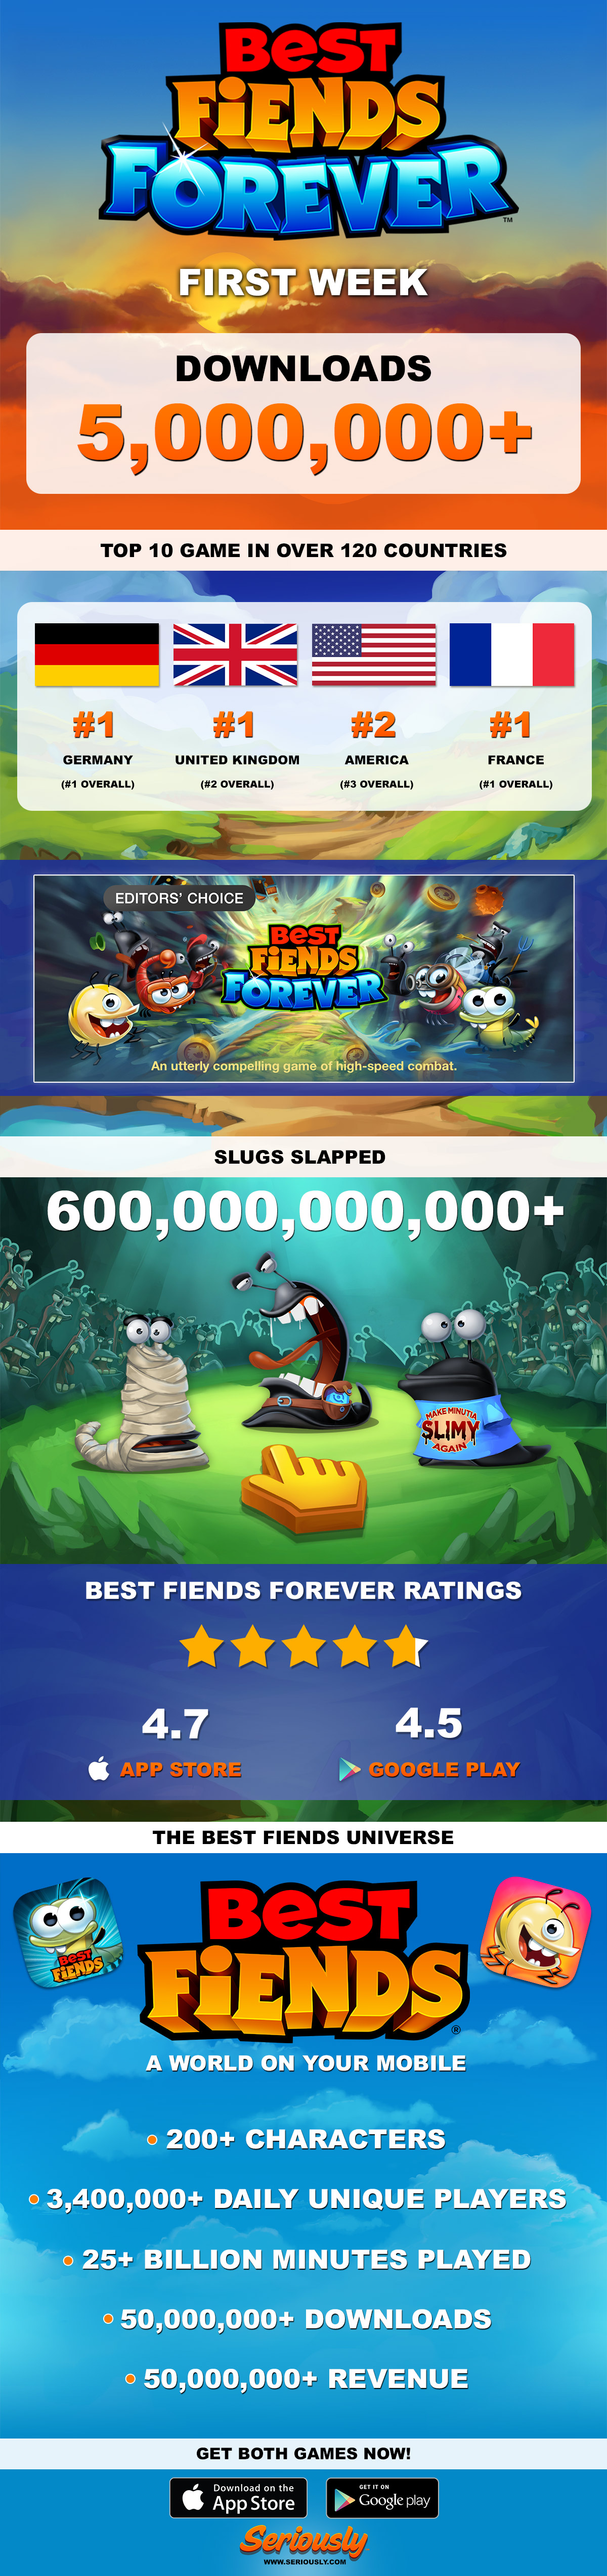 The First Week of Best Fiends Forever